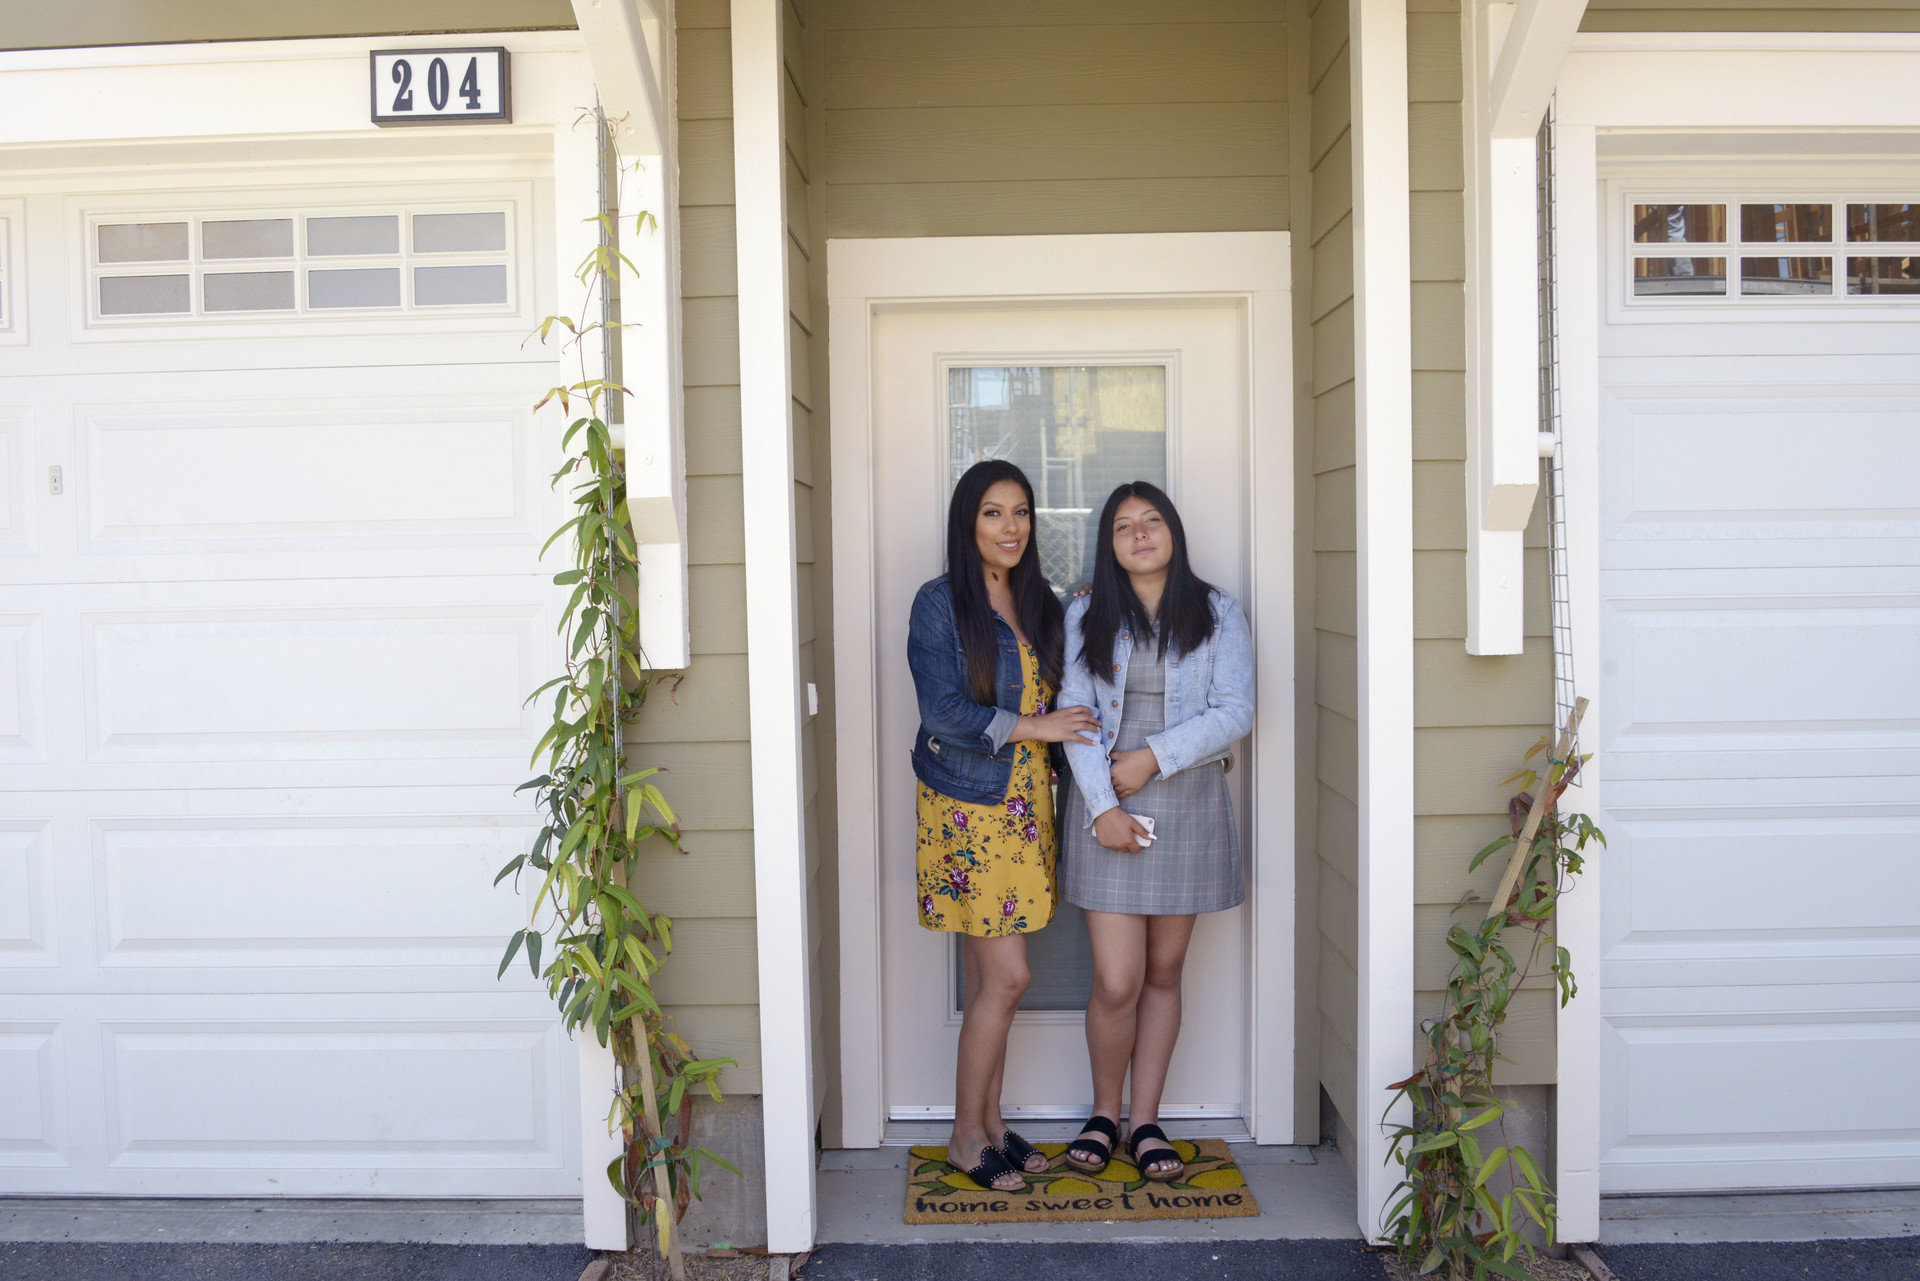 Julieta Aquino and her daughter Alexys in front of their new home in Fremont, which they moved into in June. Aquino helped build the housing complex as a participant in an East Bay-Silicon Valley Habitat for Humanity program.  Photo by Stephanie Lister/KQED